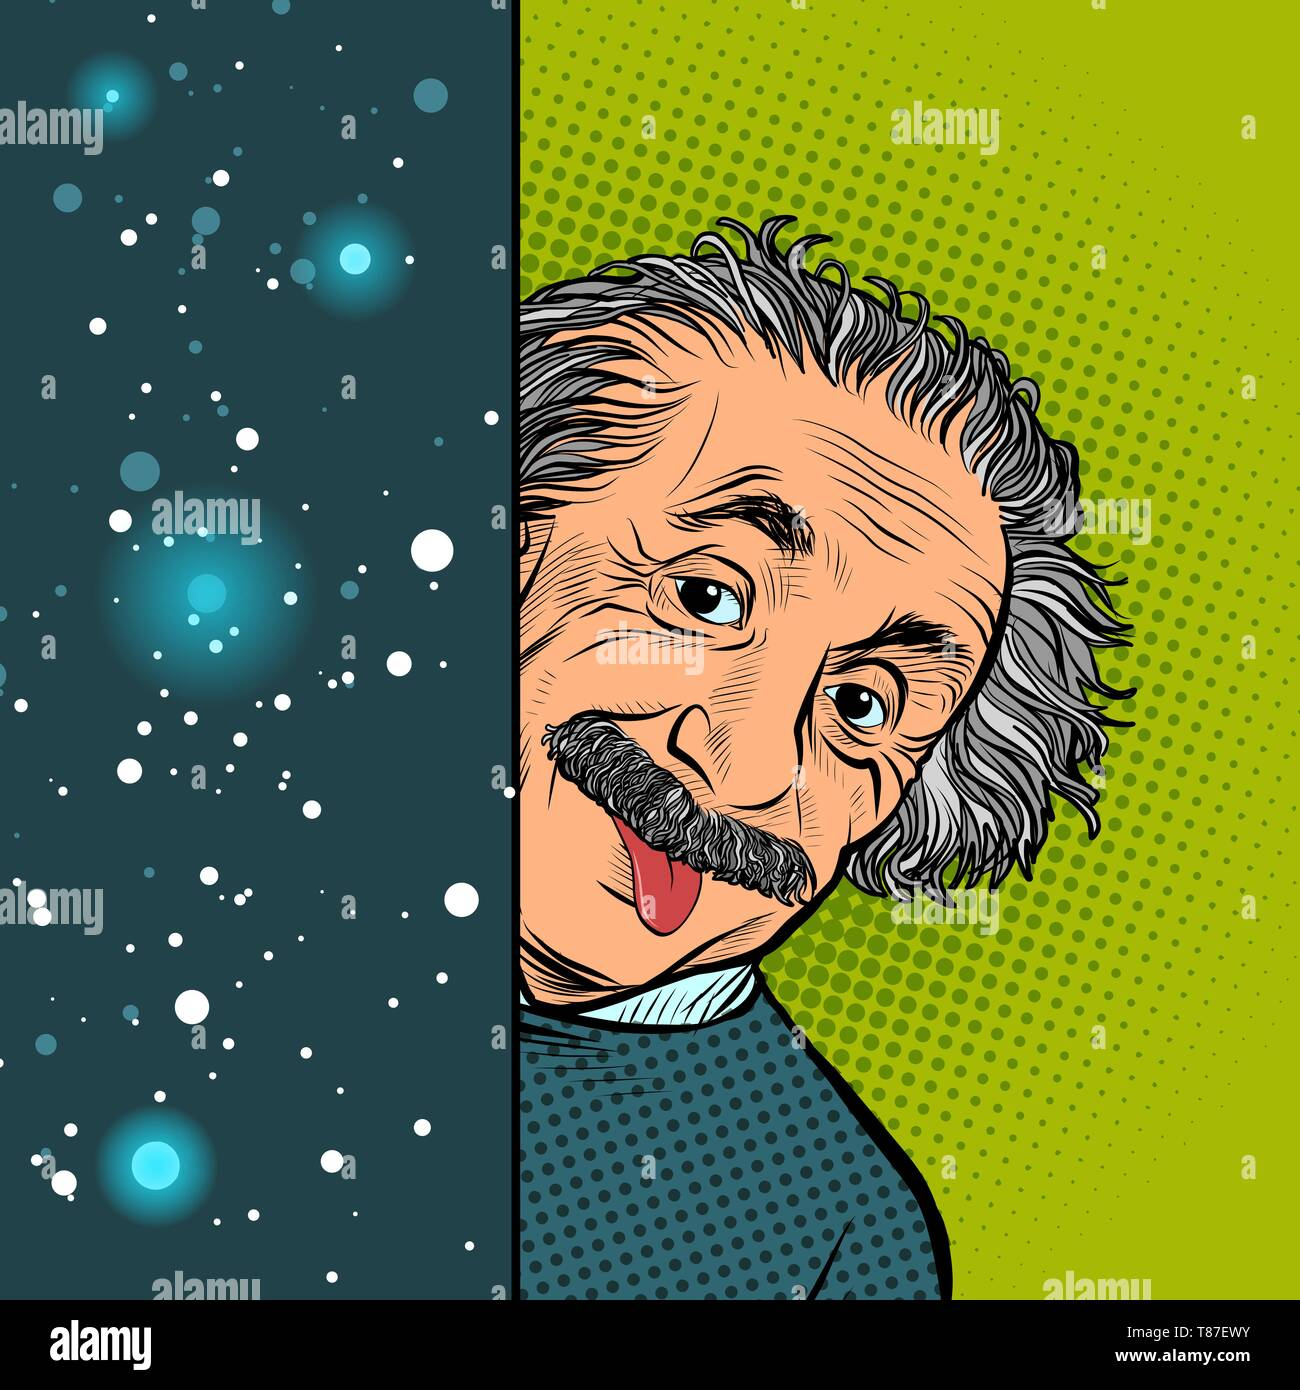 Moscow, Russia - April 11, 2019. Albert Einstein, scientist, physicist, hand-drawn portrait. Science and education. The author of the theory of relati - Stock Image